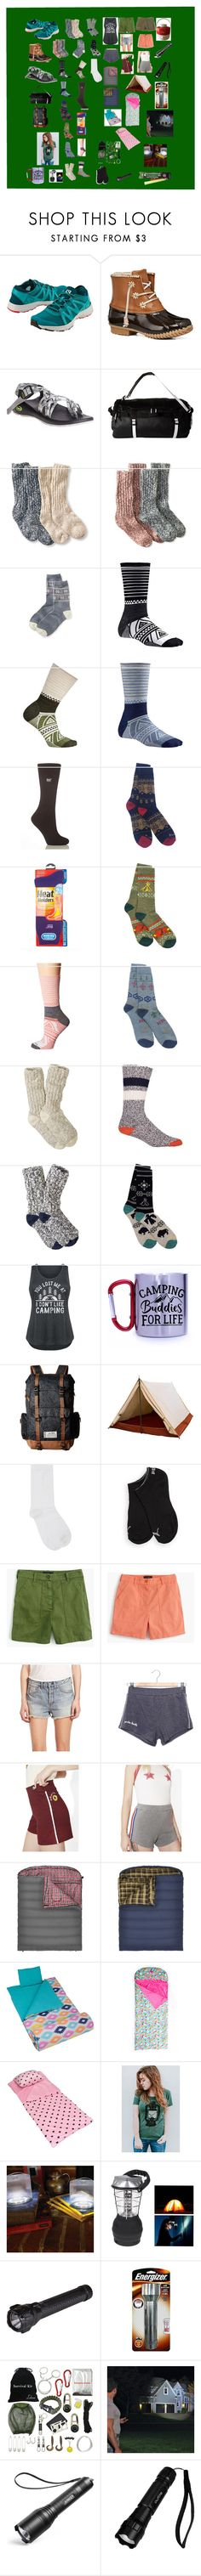 """""""Camping Items"""" by mikahelaine ❤ liked on Polyvore featuring Title Nine, Jack Rogers, Chaco, The North Face, L.L.Bean, Old Navy, Smartwool, Grabber, Pendleton and Woolrich"""